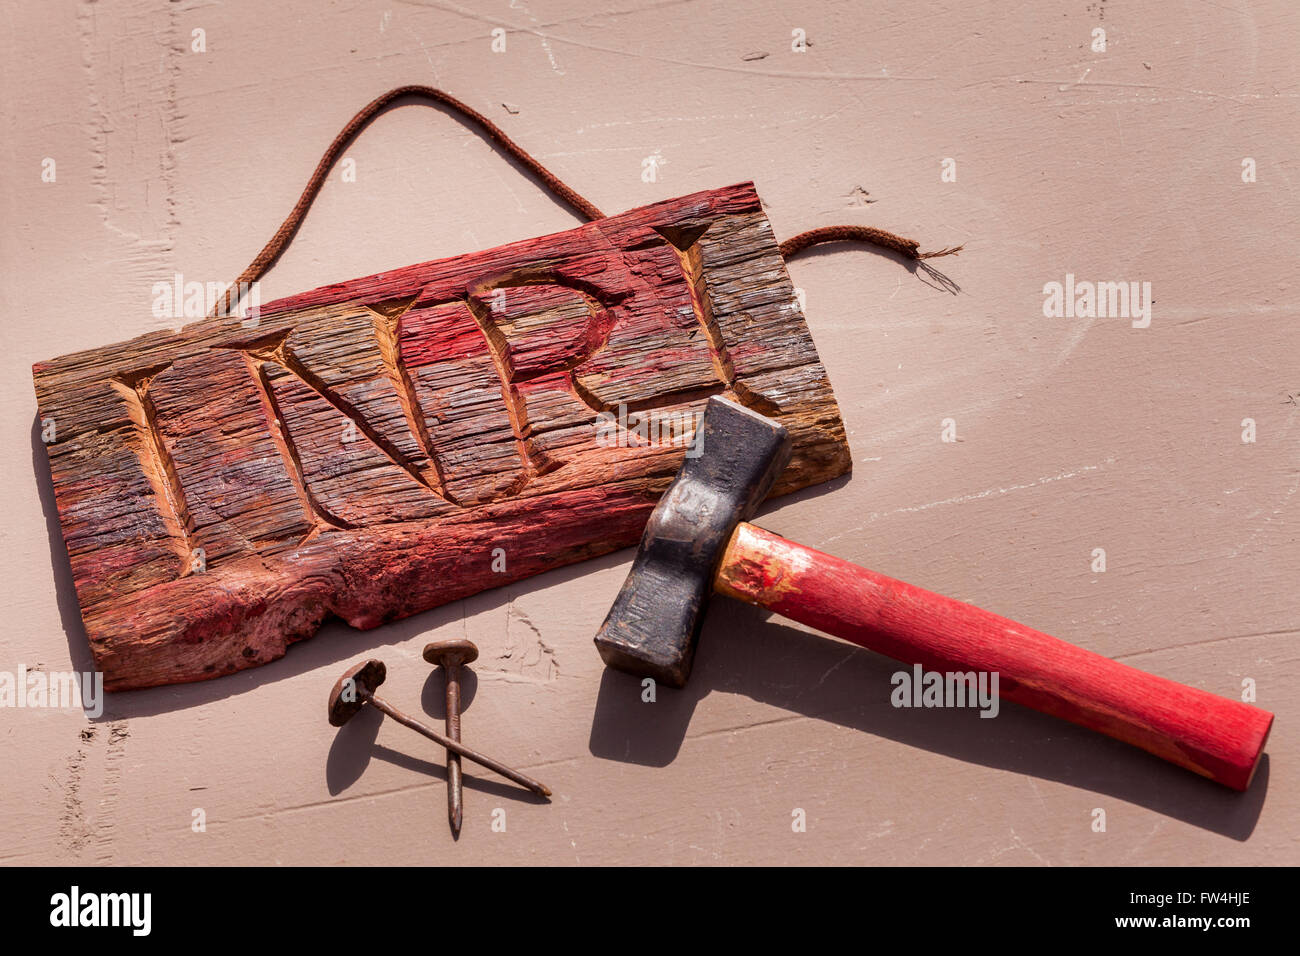 Wooden carved INRI placque with hammer and nails props for the Passion Play, Adeje, Tenerife, Canary Islands, Spain. - Stock Image